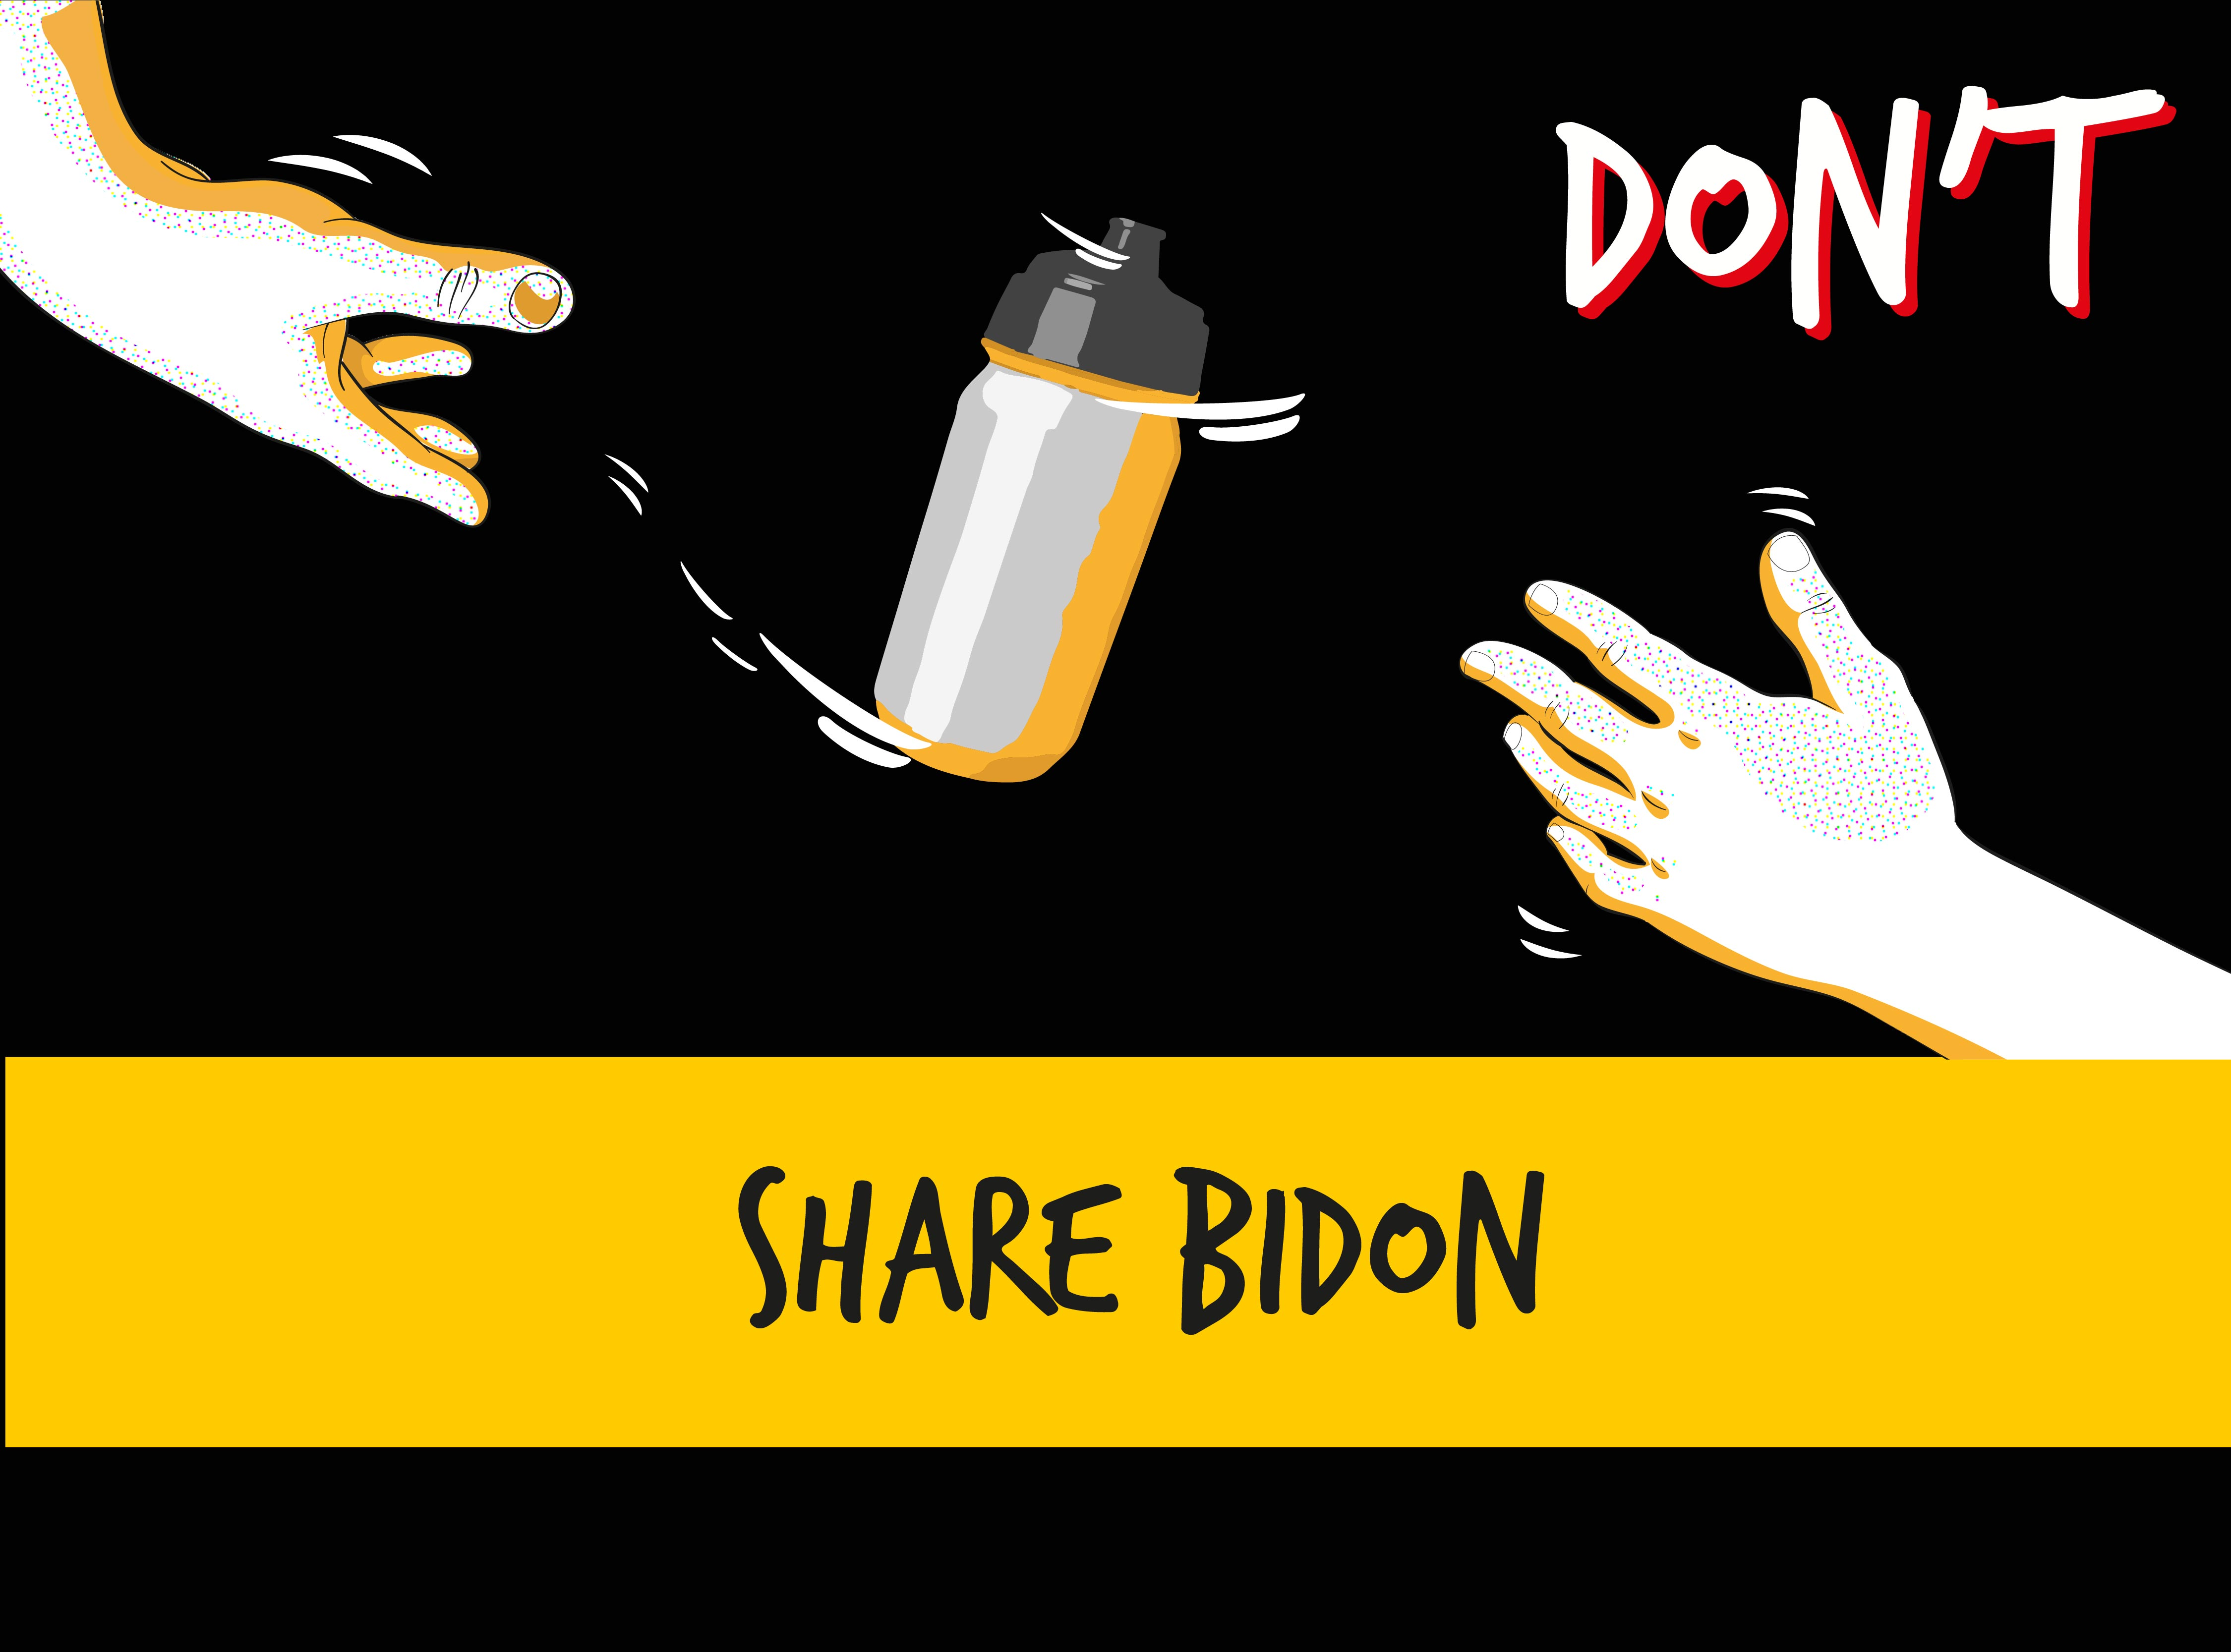 don't share bidon